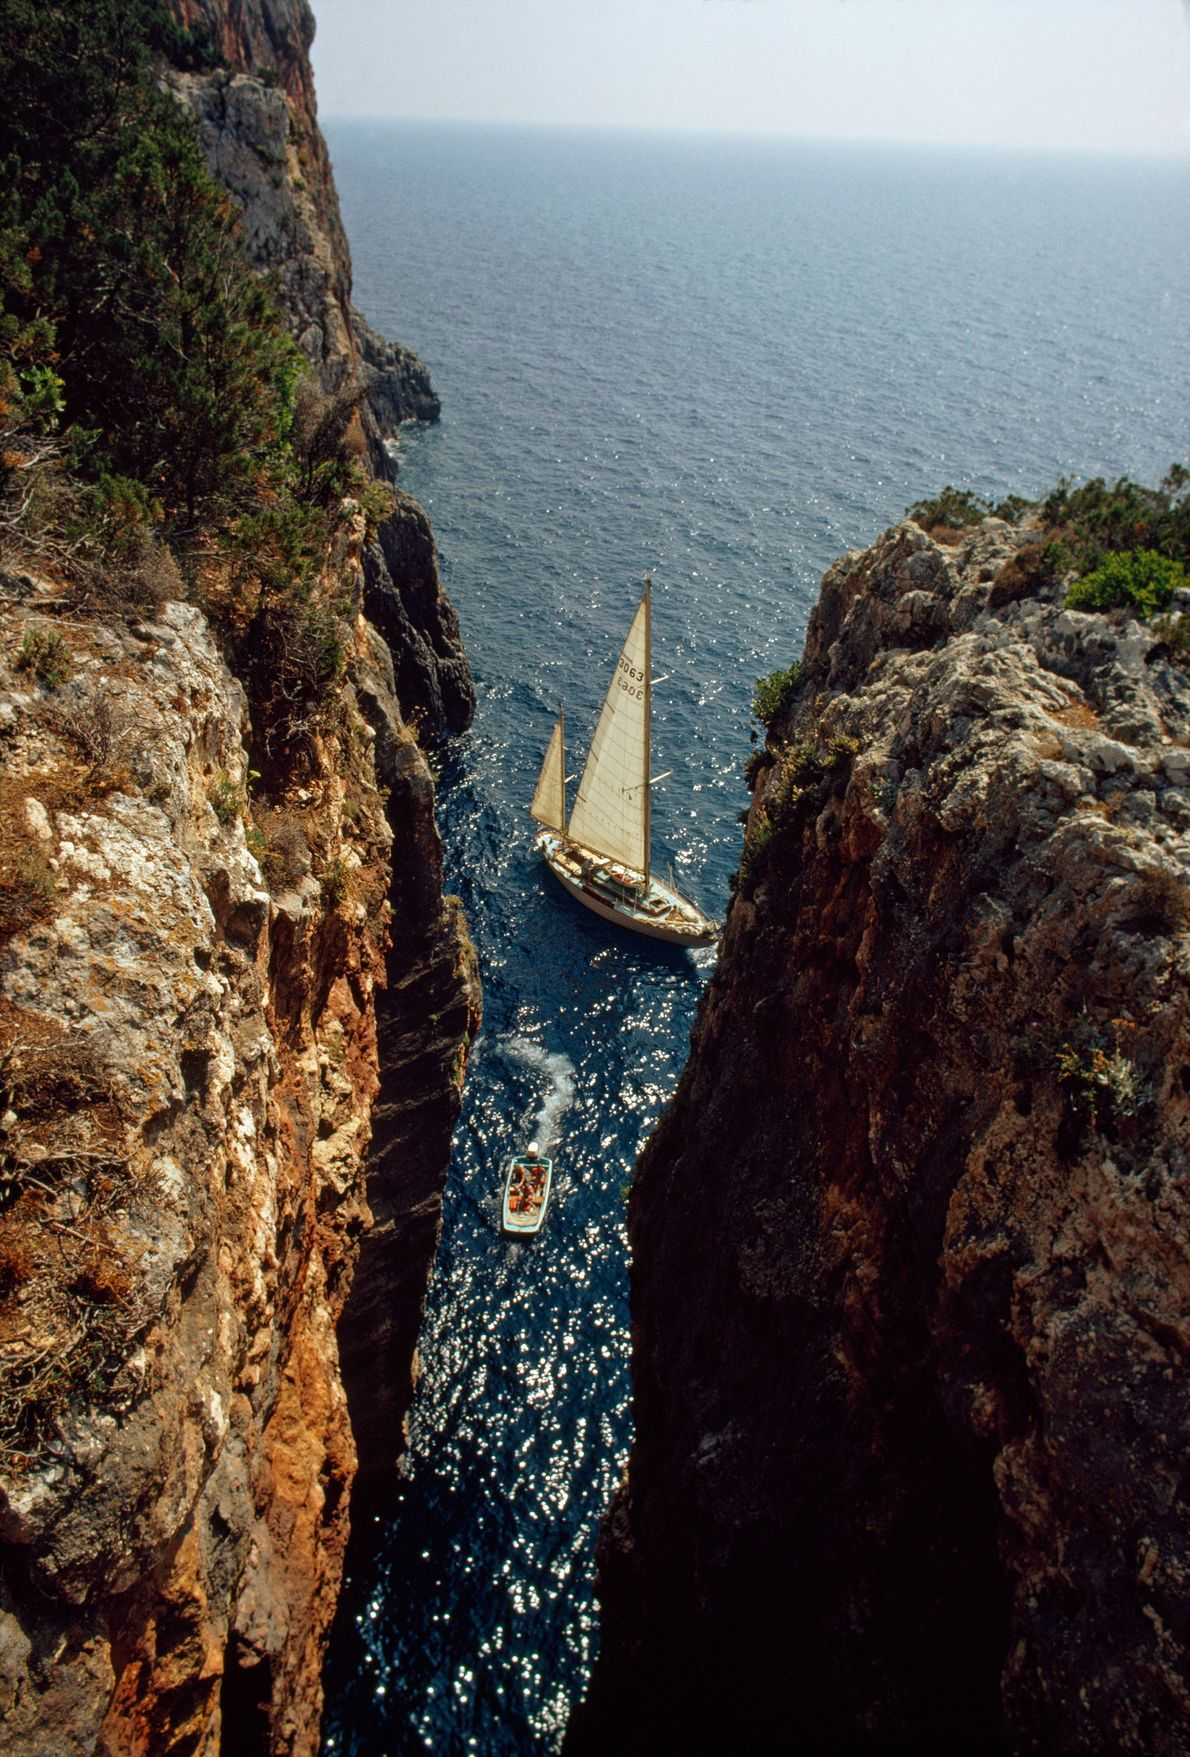 Boats cut through the epic cliffs of Cephalonia.